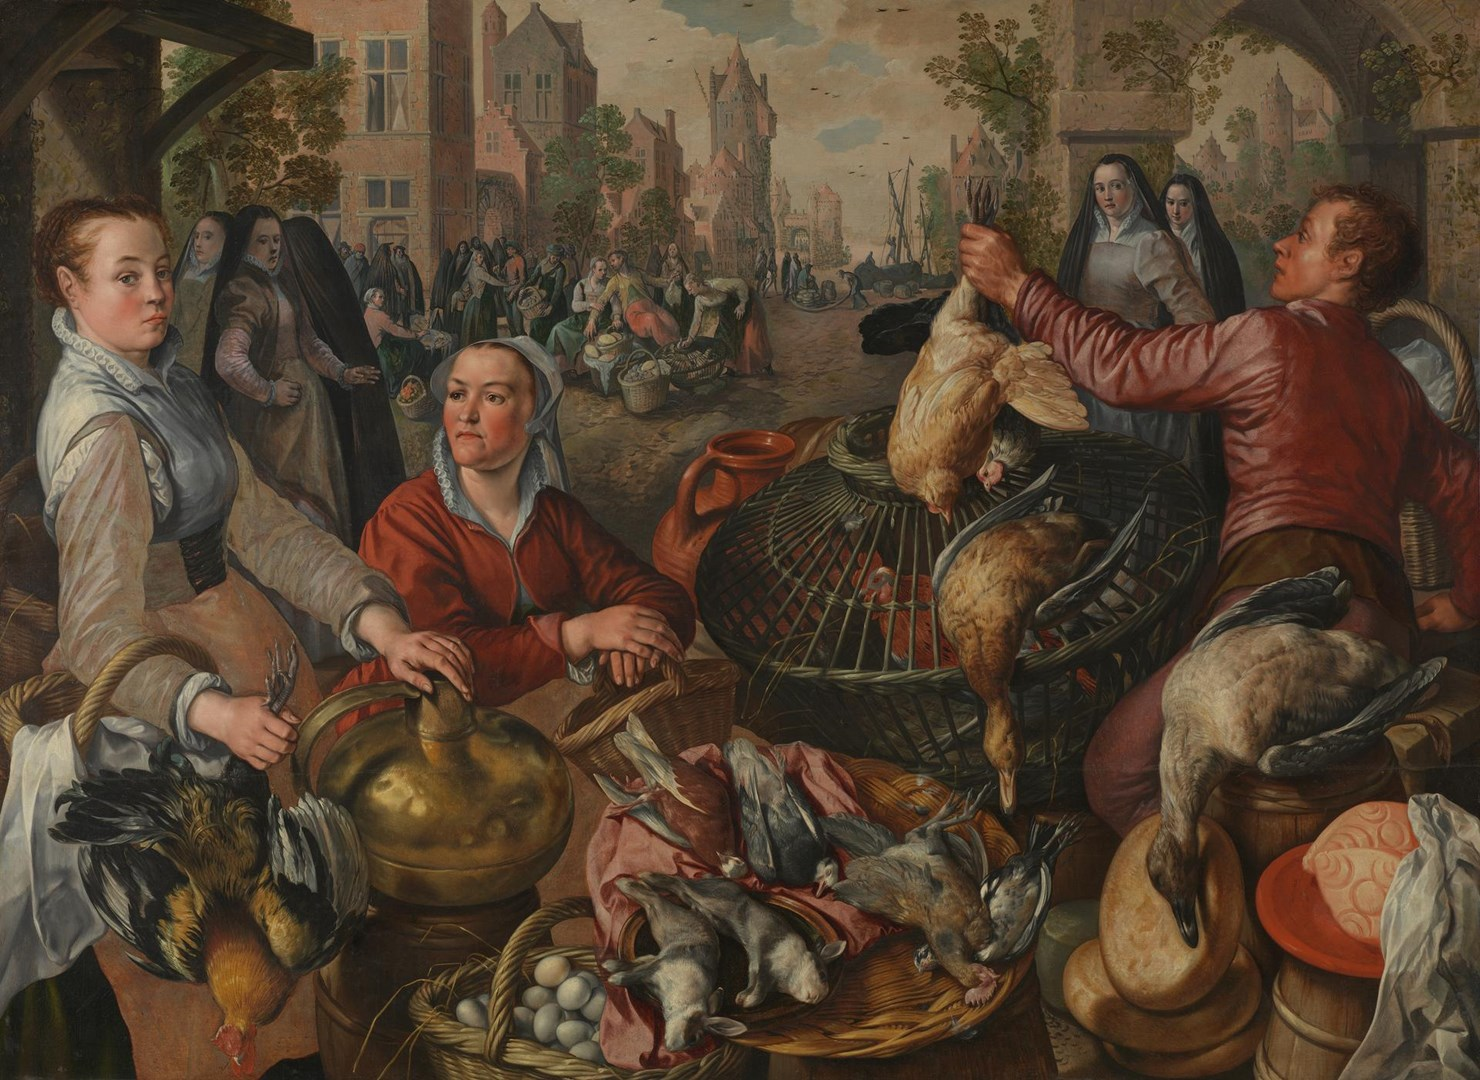 The Four Elements: Air by Joachim Beuckelaer